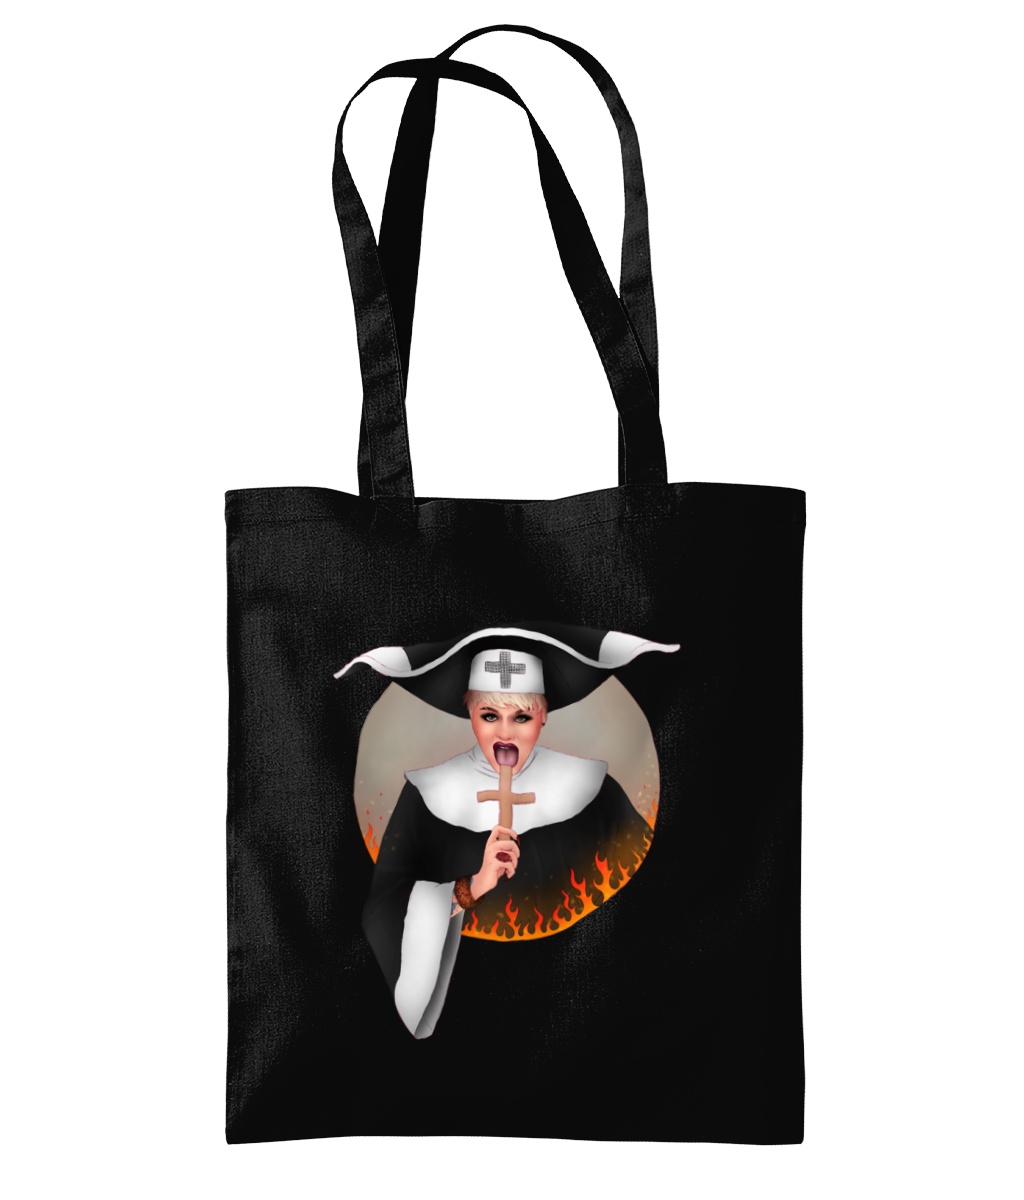 Megan Schoonbrood - Entrance Look Tote Bag